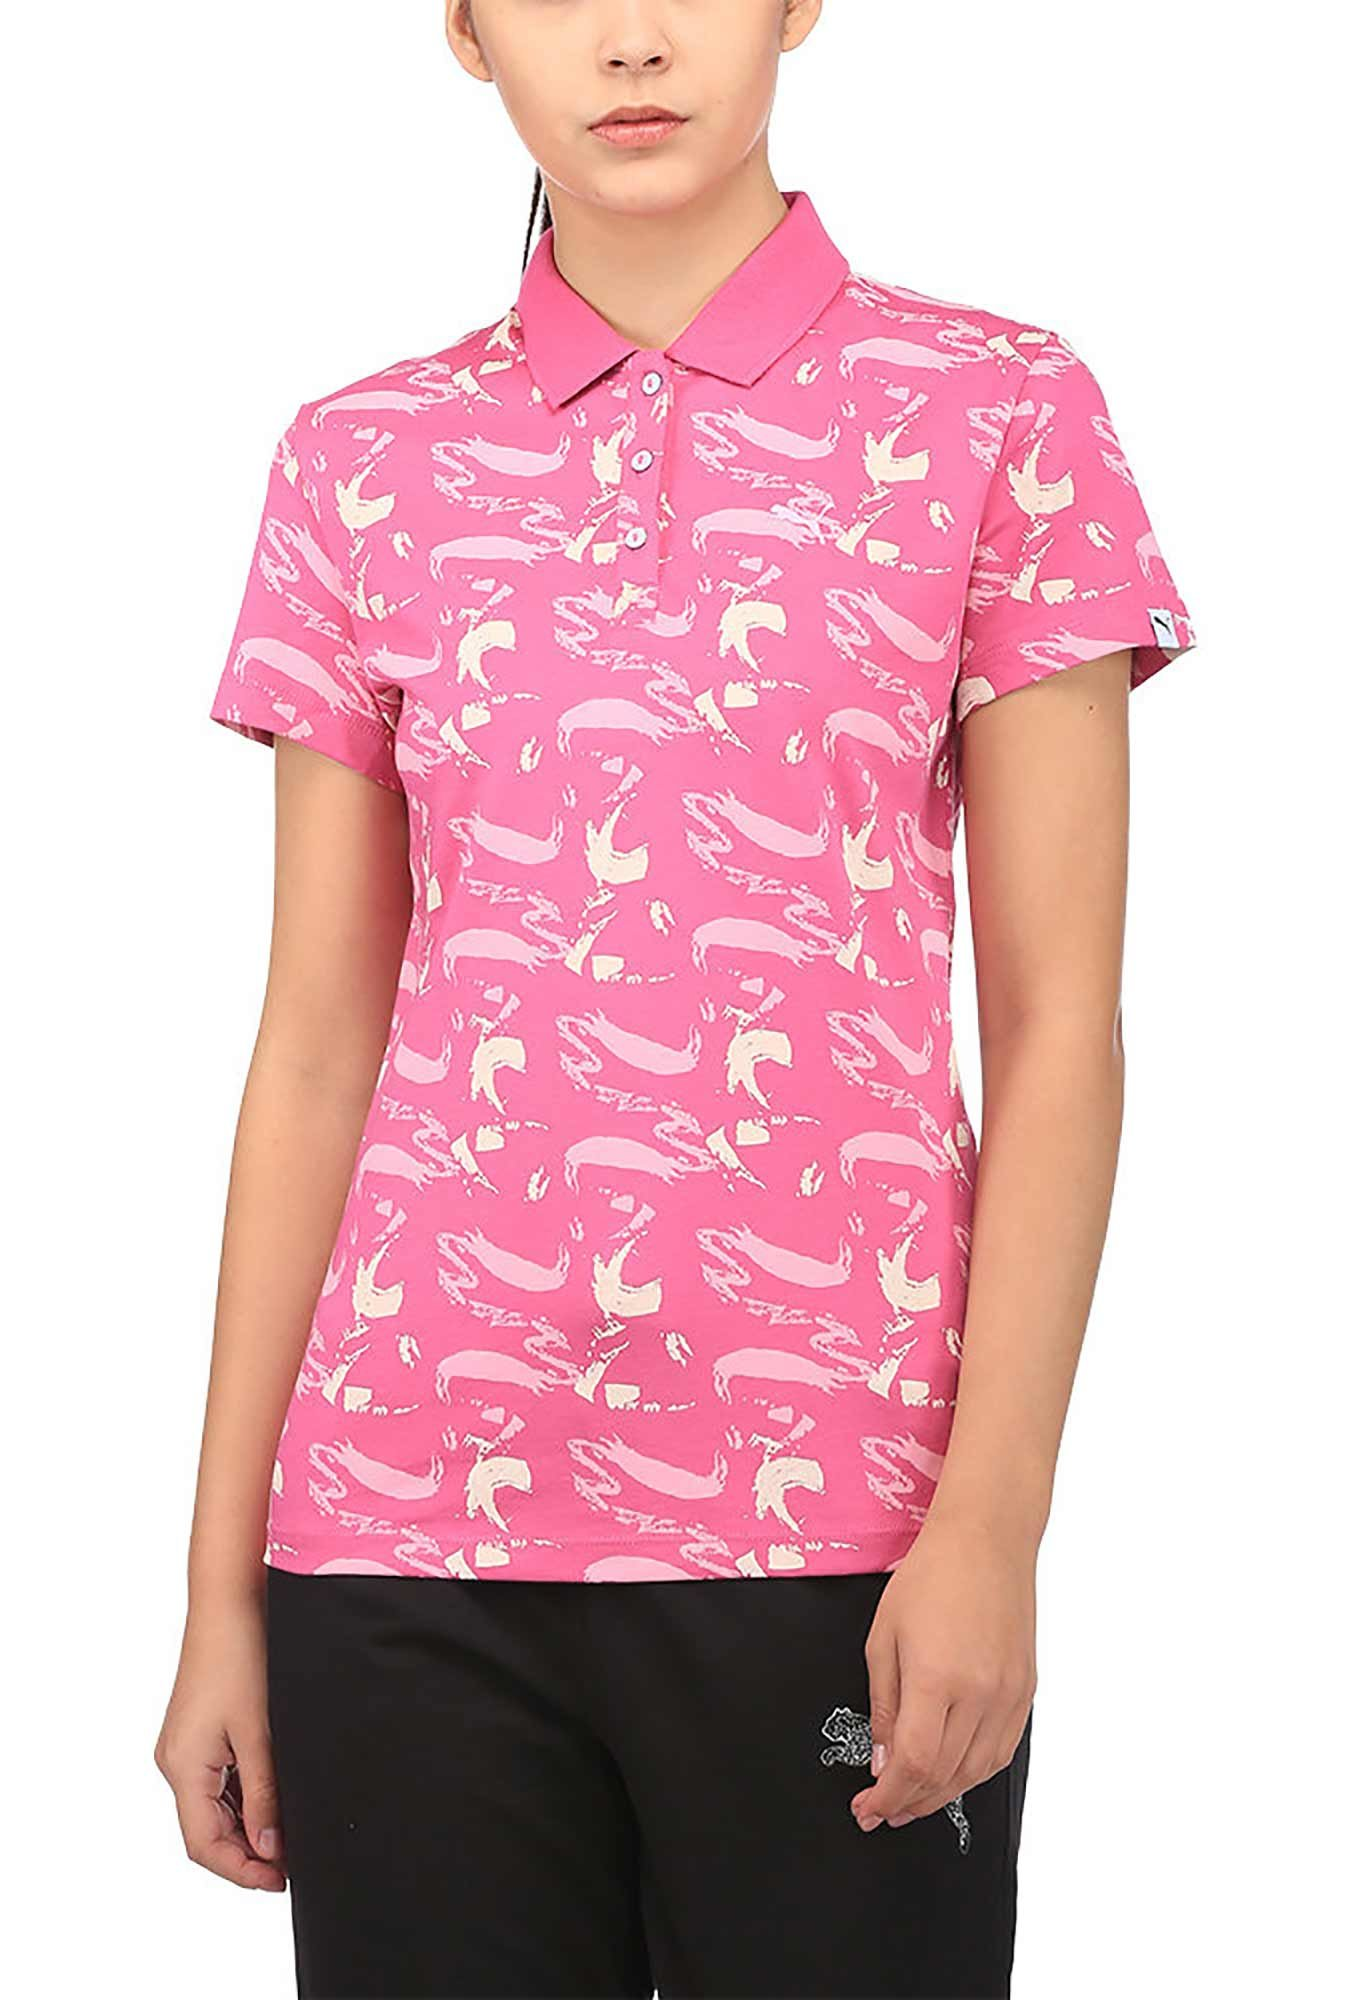 3c280b69ed7 Buy Puma Pink Printed Aop Polo T-Shirt for Women   Tata CLiQ